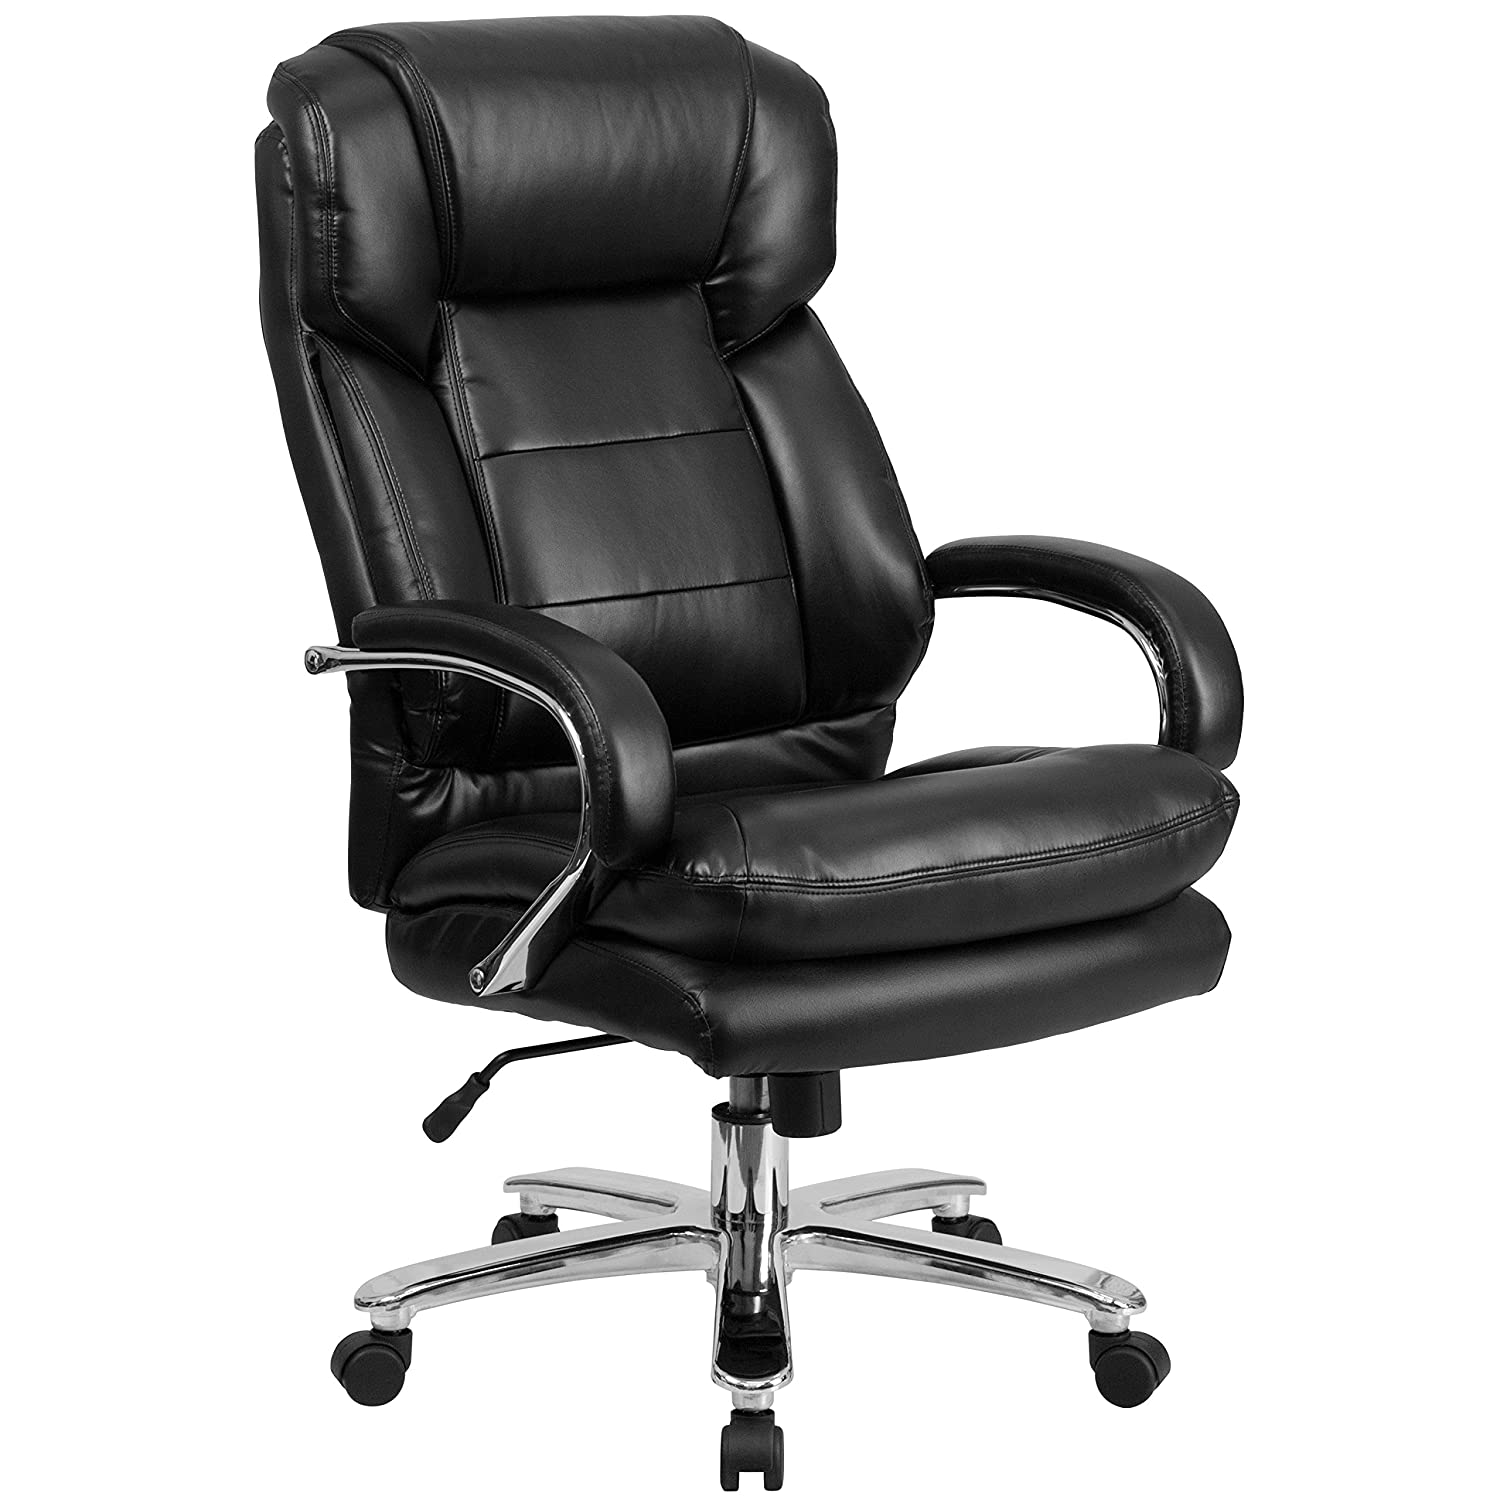 HERCULES Series 24-7 Intensive Use - Multi-Shift - Big & Tall 500 lb. Capacity Black Leather Executive Swivel Chair